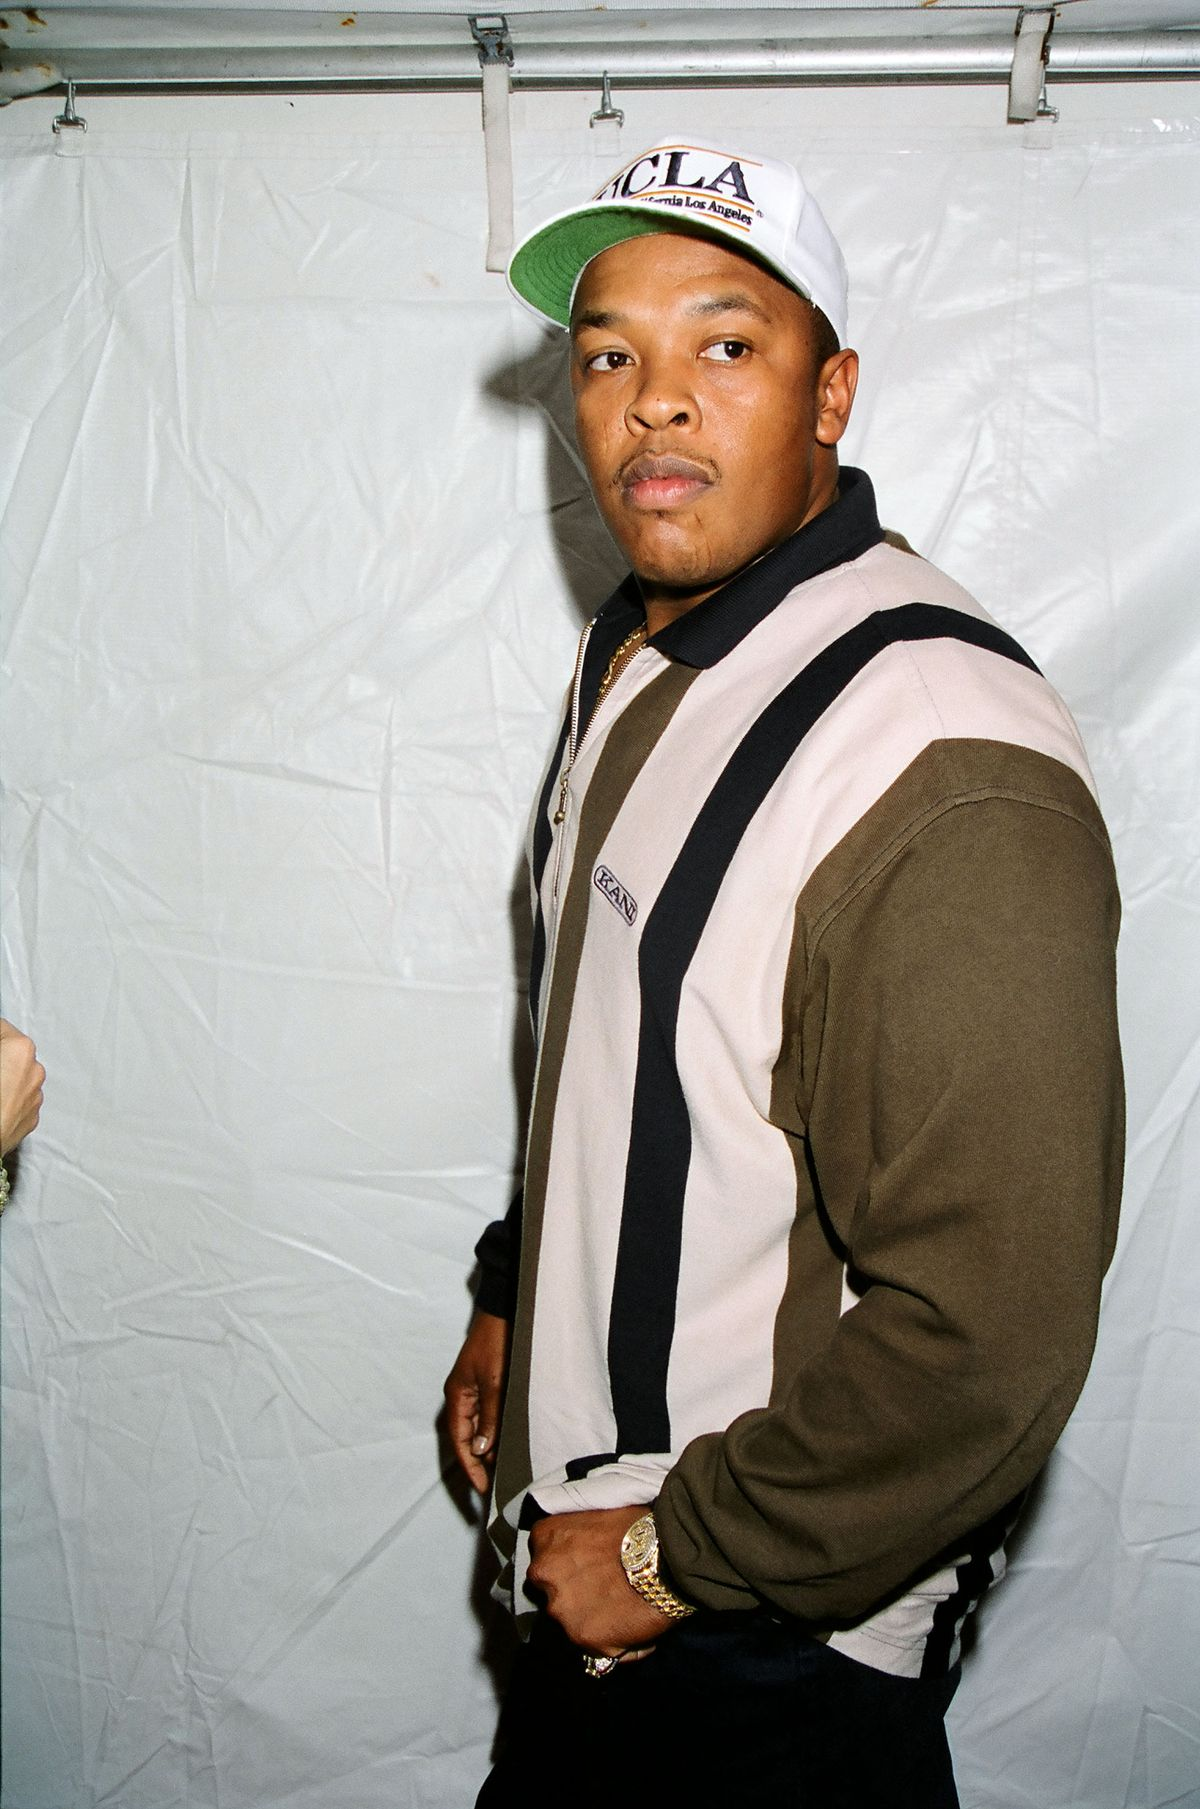 Dr. Dre during 1995 MTV Video Music Awards Show at Radio City Music Hall in New York City, New York, United States. (Photo by Jeff Kravitz/FilmMagic, Inc)